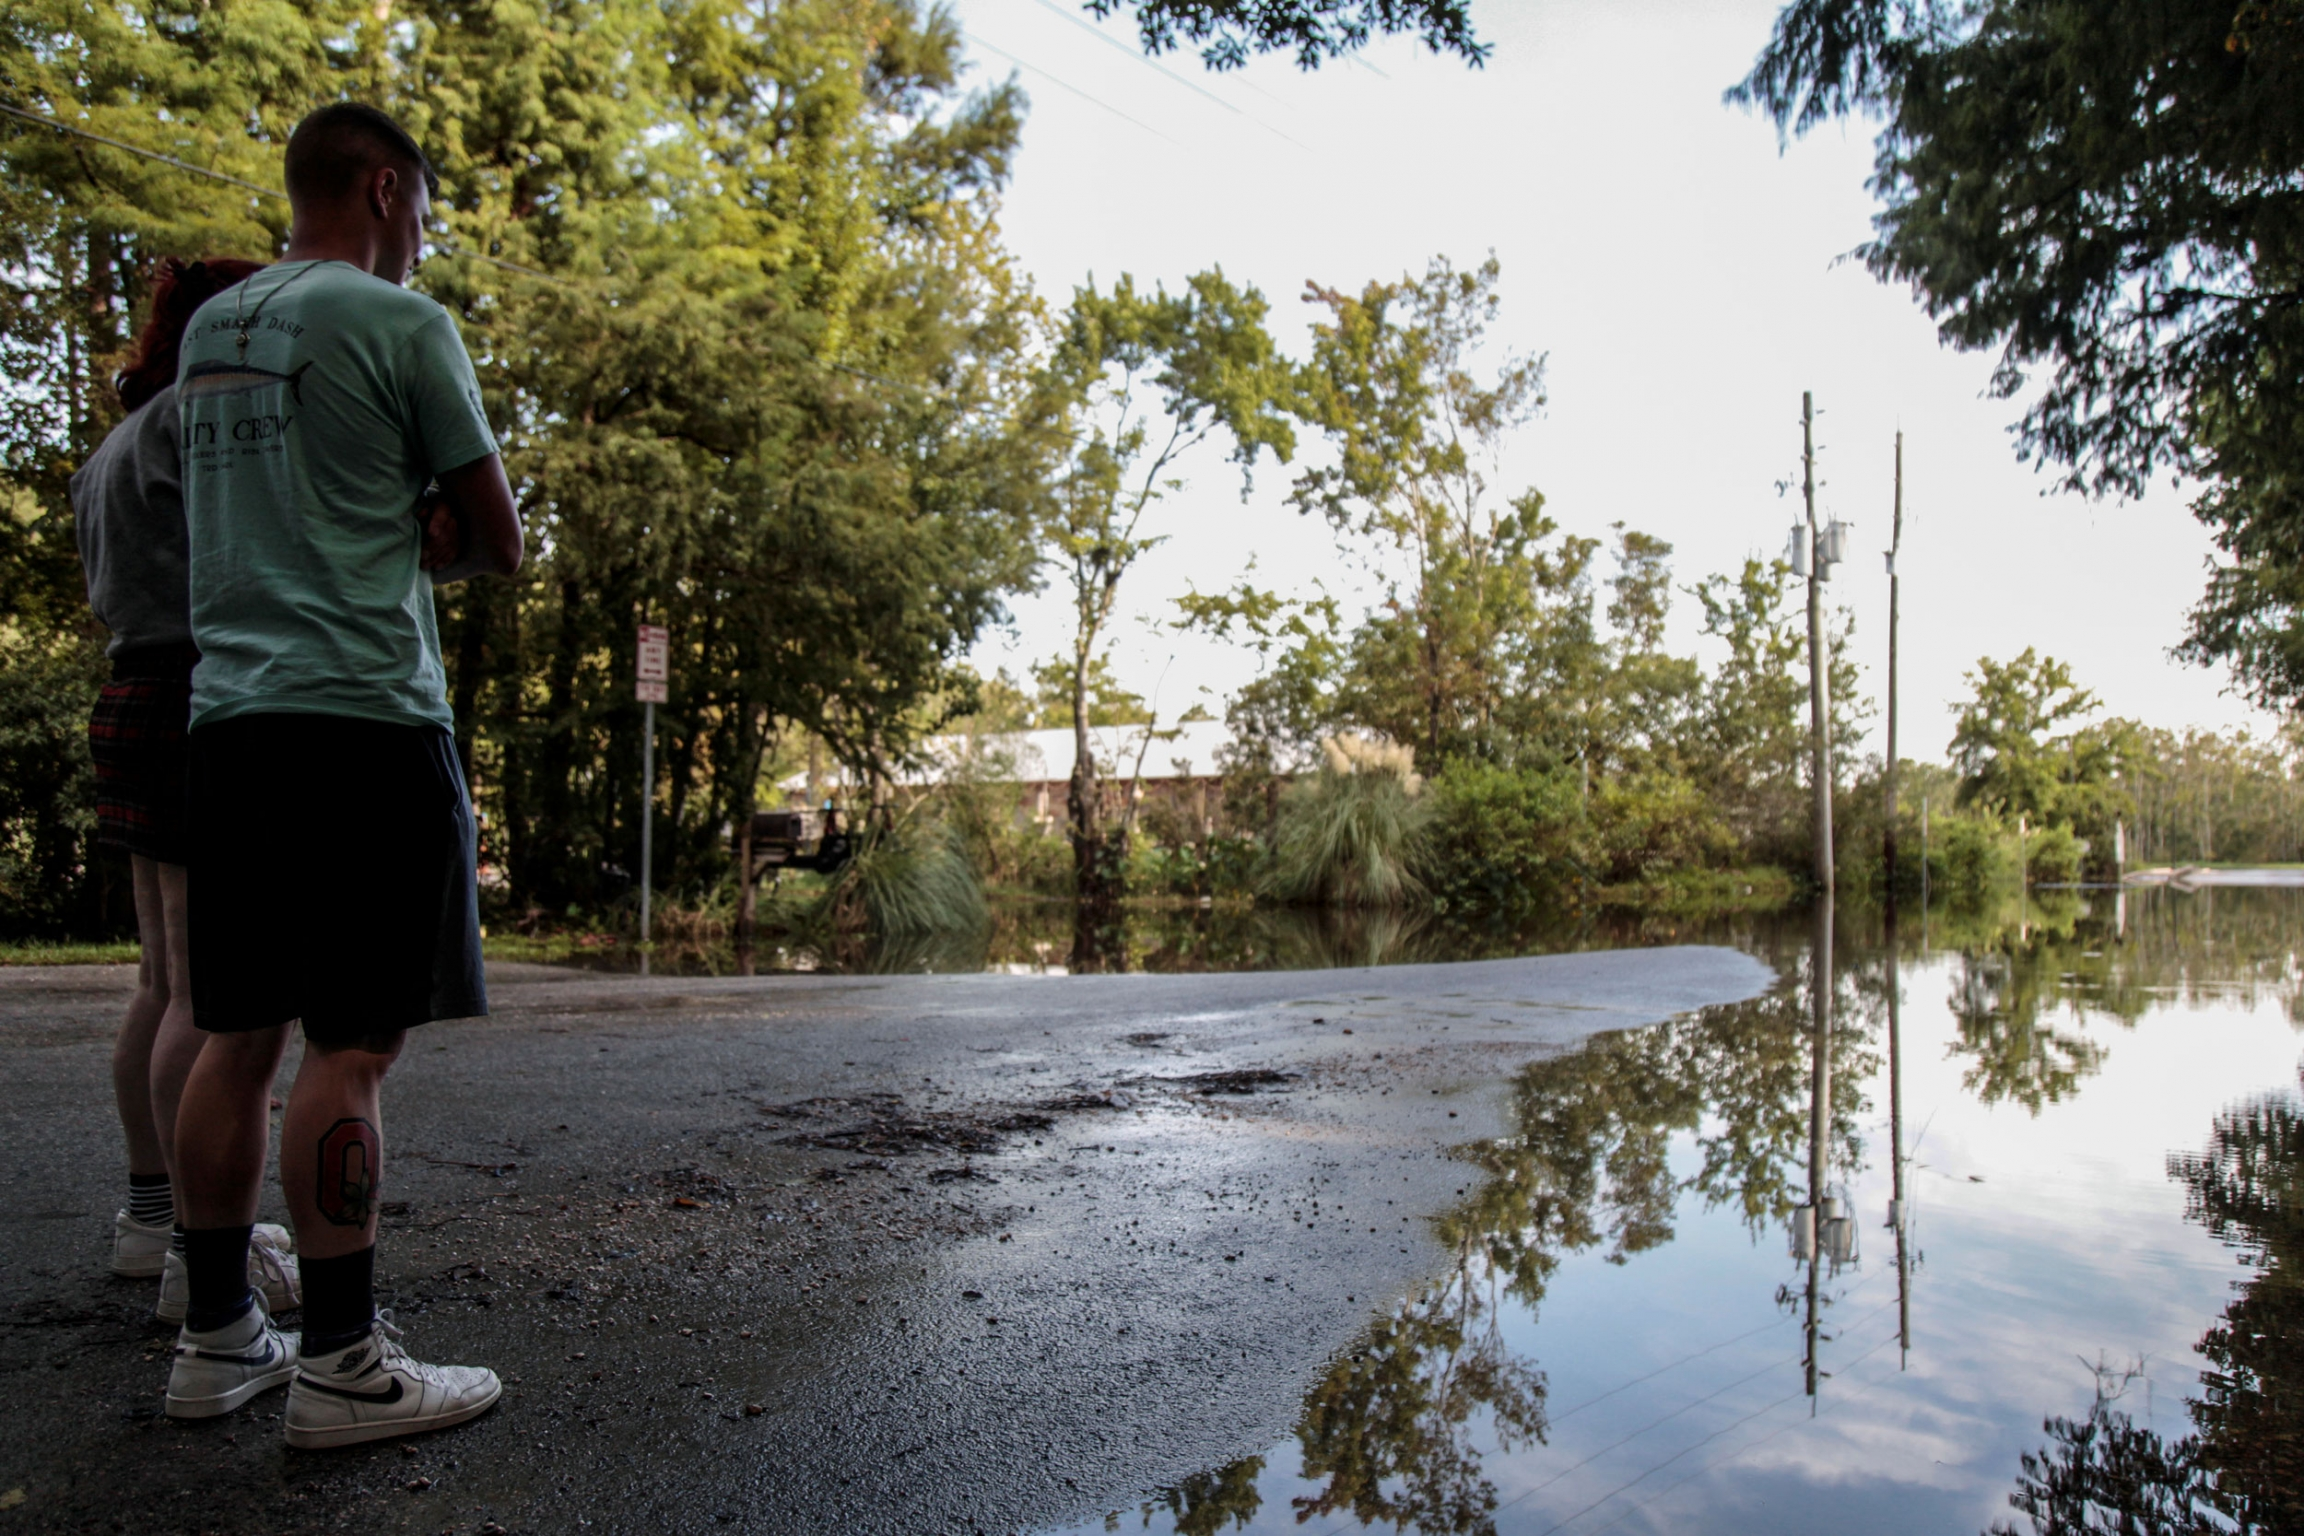 Two people are shown standing on a tree-lined street partially flooded from recent storms.